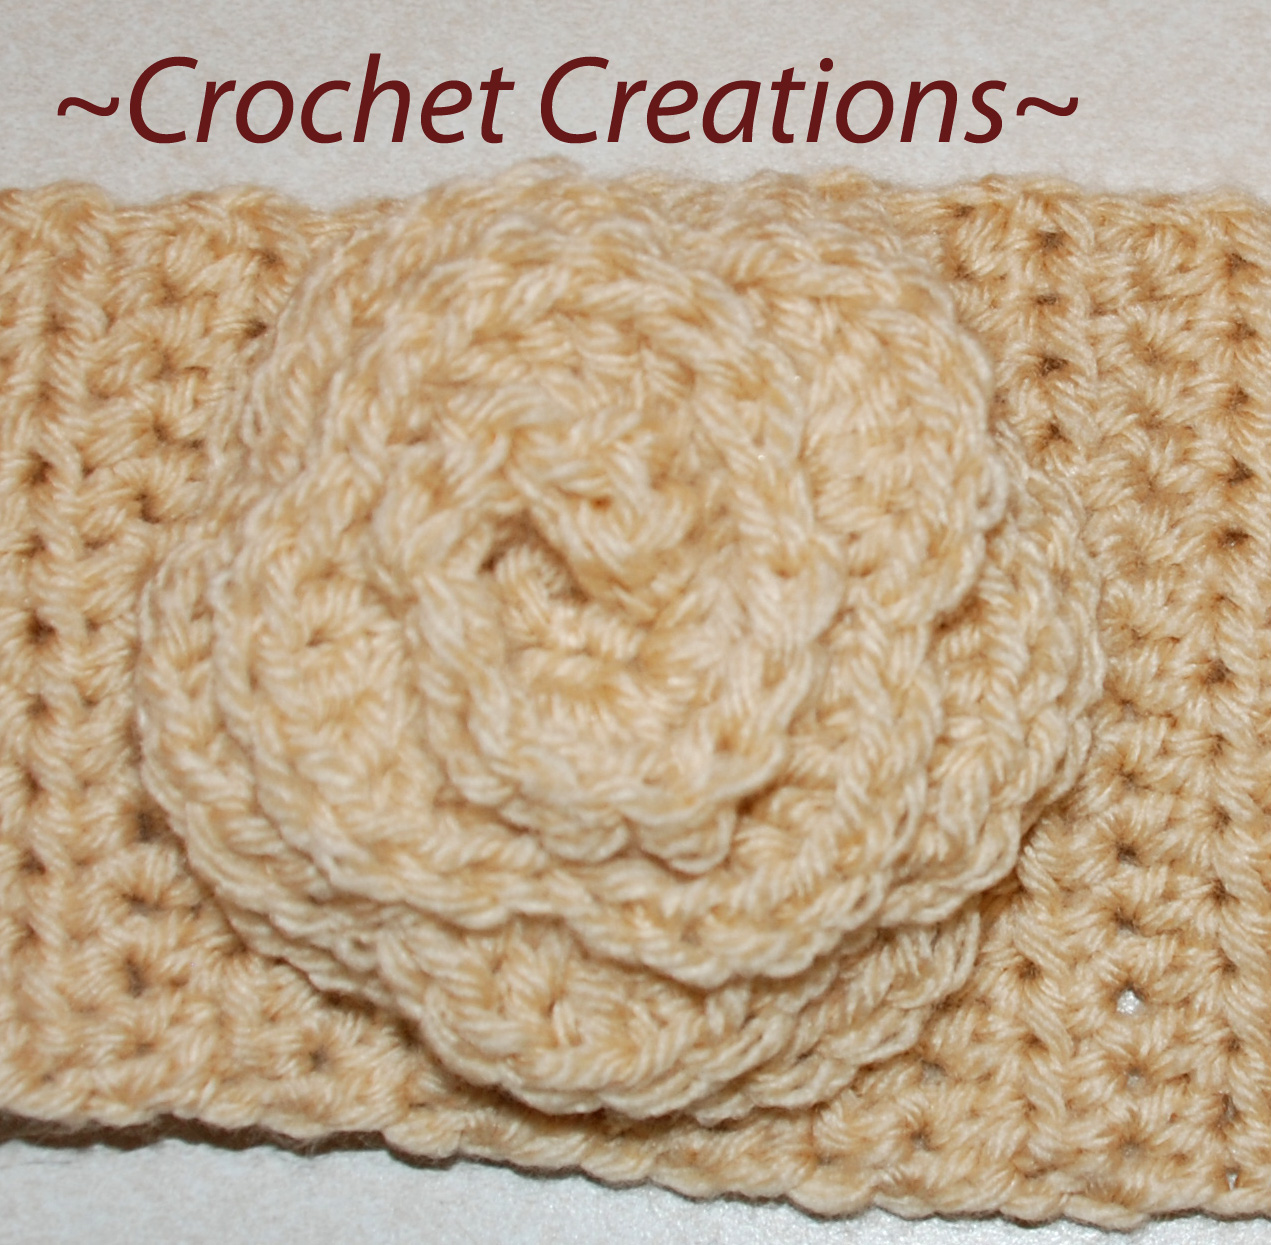 Free Crochet Pattern For Ladies Headband : Amys Crochet Creative Creations: Crochet Women Headband ...